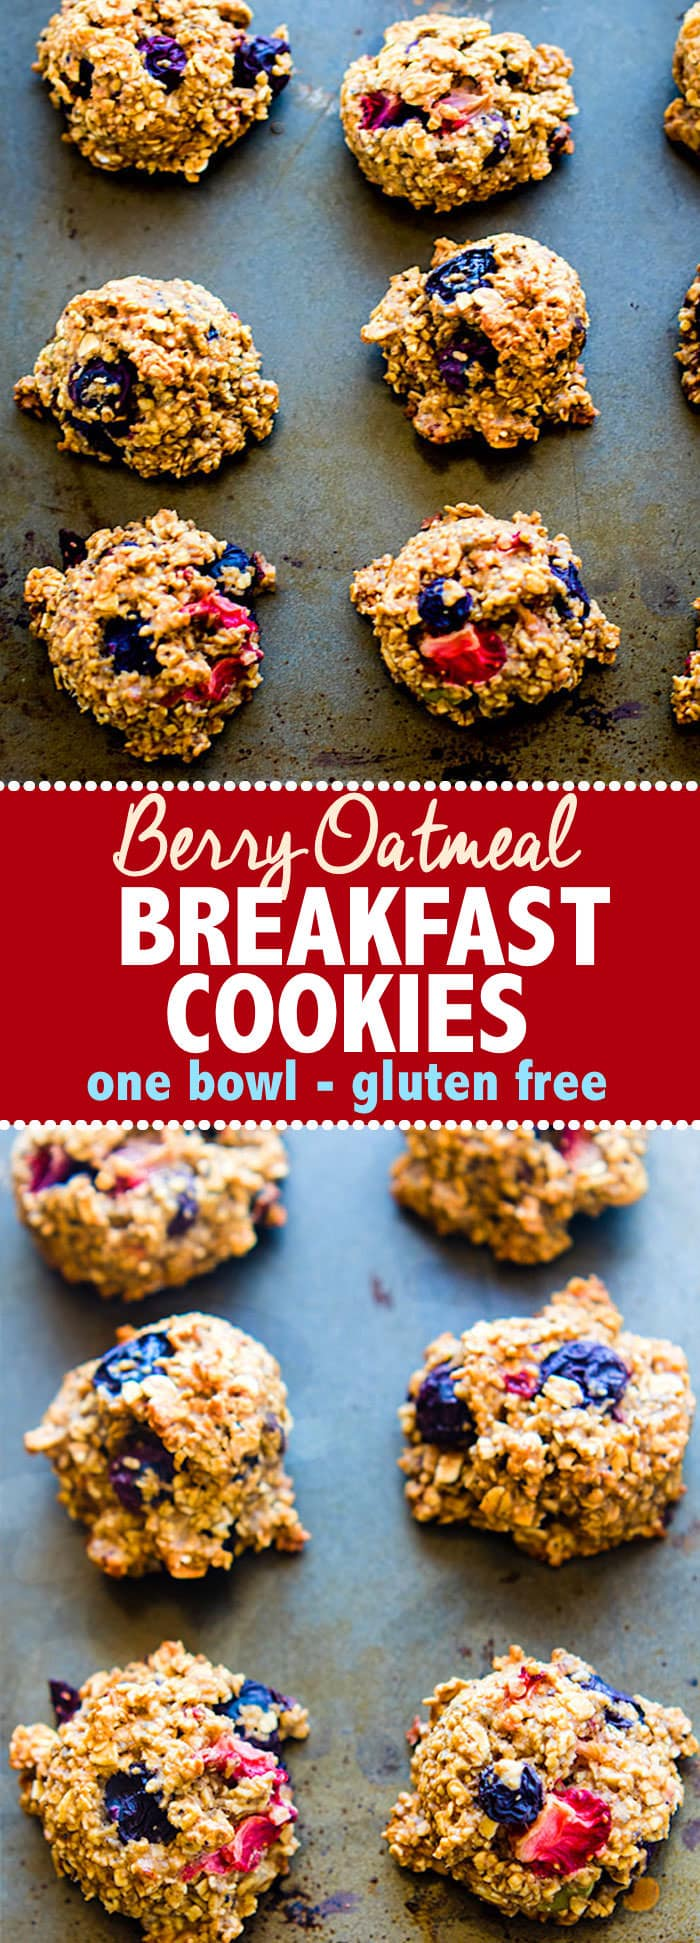 One Bowl Berry Oatmeal Breakfast Cookies. Fresh Fruit combined with gluten free oats to makehealthy breakfast cookies. Great for breakfast to go, snacks, or dessert. Easy to make, dairy free and egg free options, simpleingredients, and DELISH